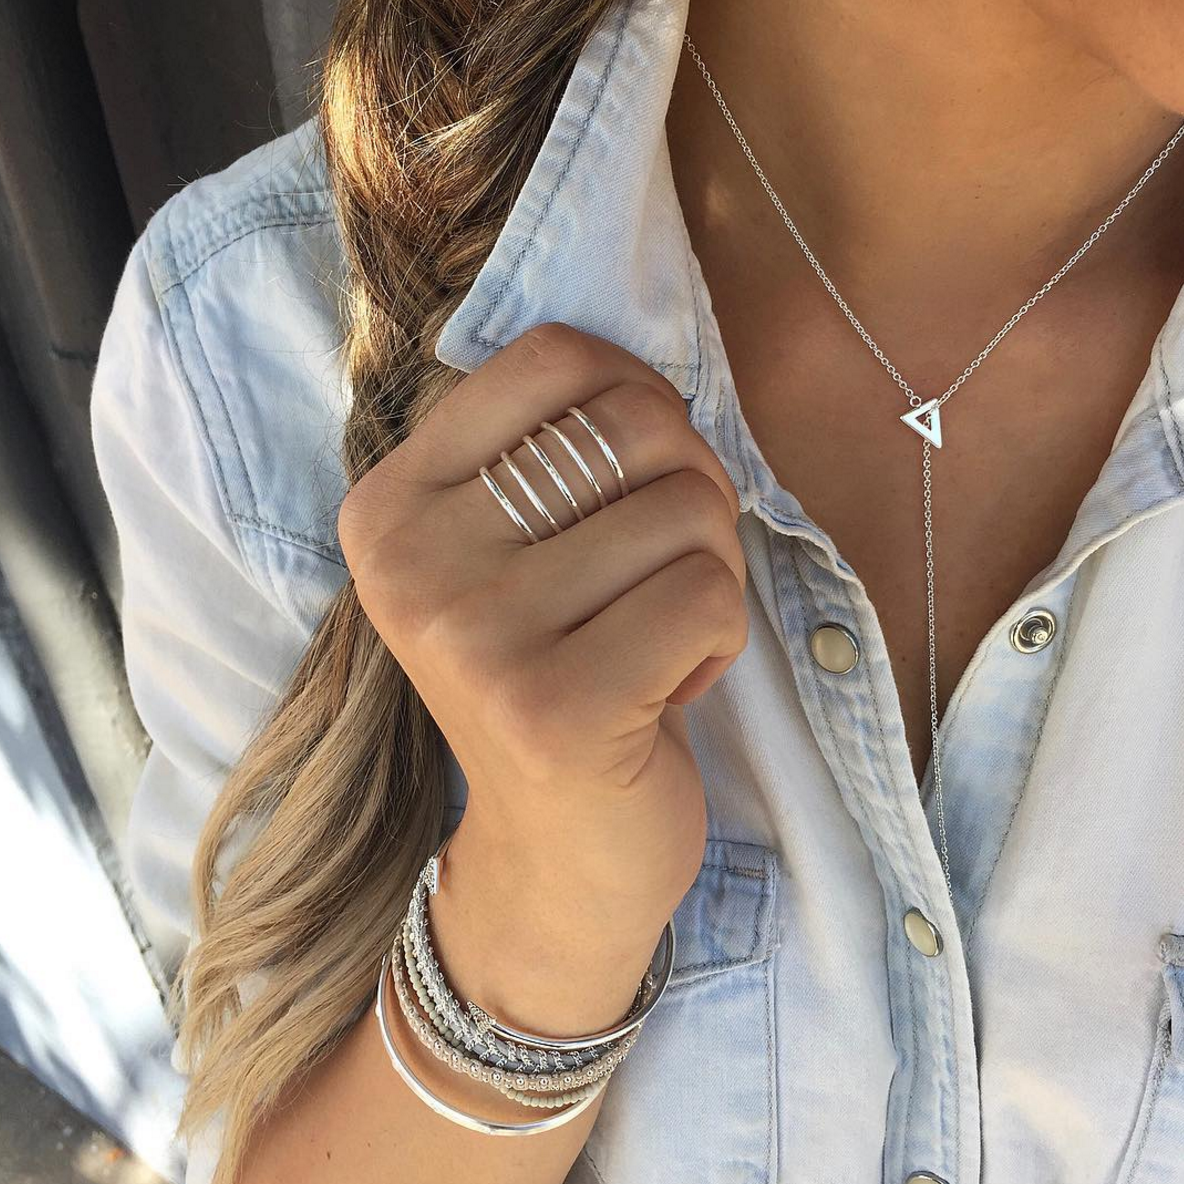 Coveting: Stella & Dot's Fall Collection